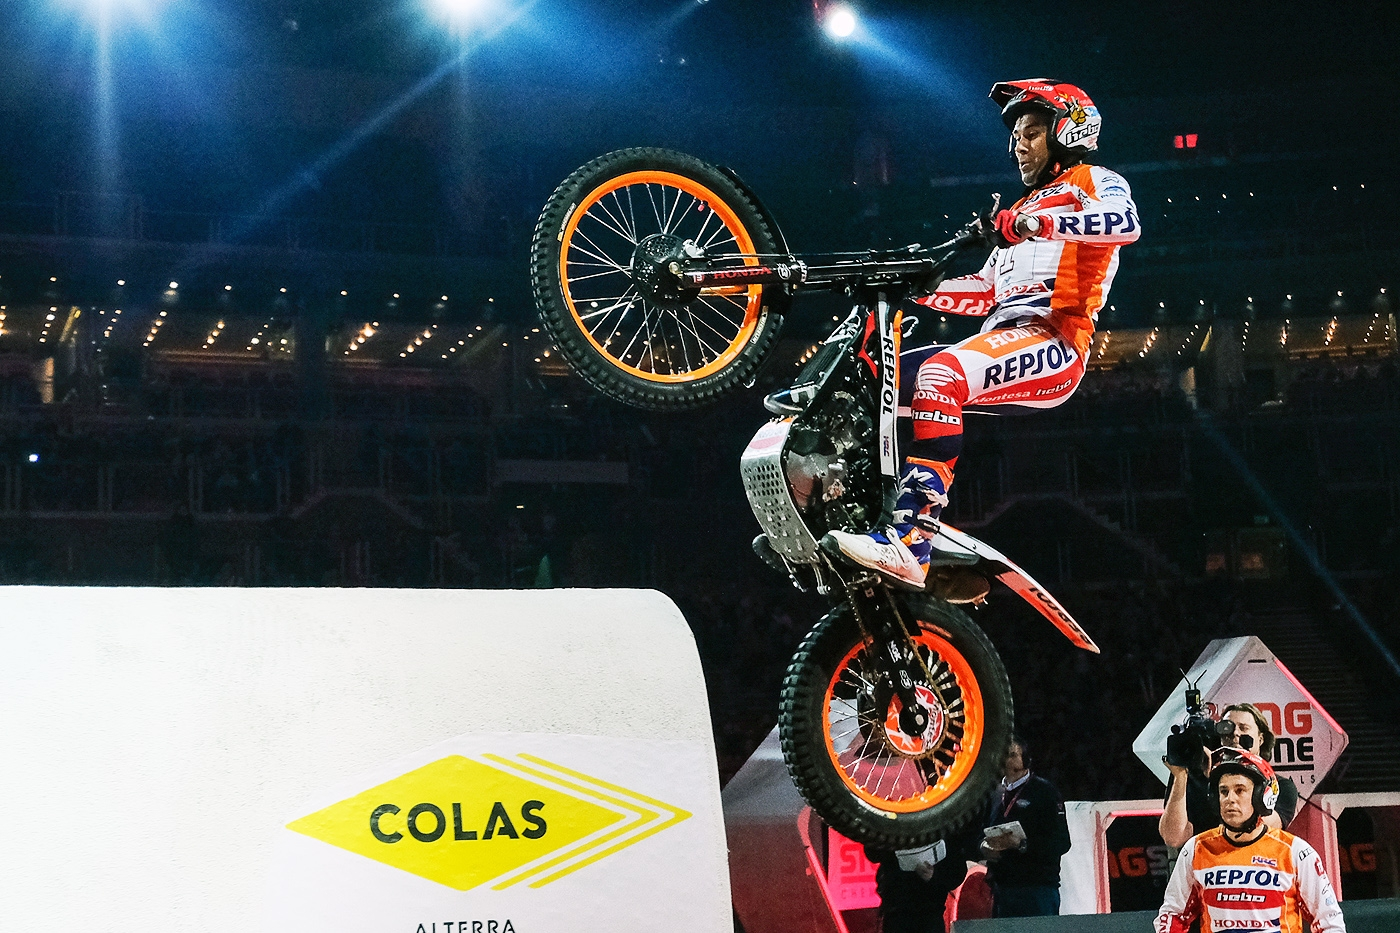 The stars of X-Trial head to Barcelona on 3rd February